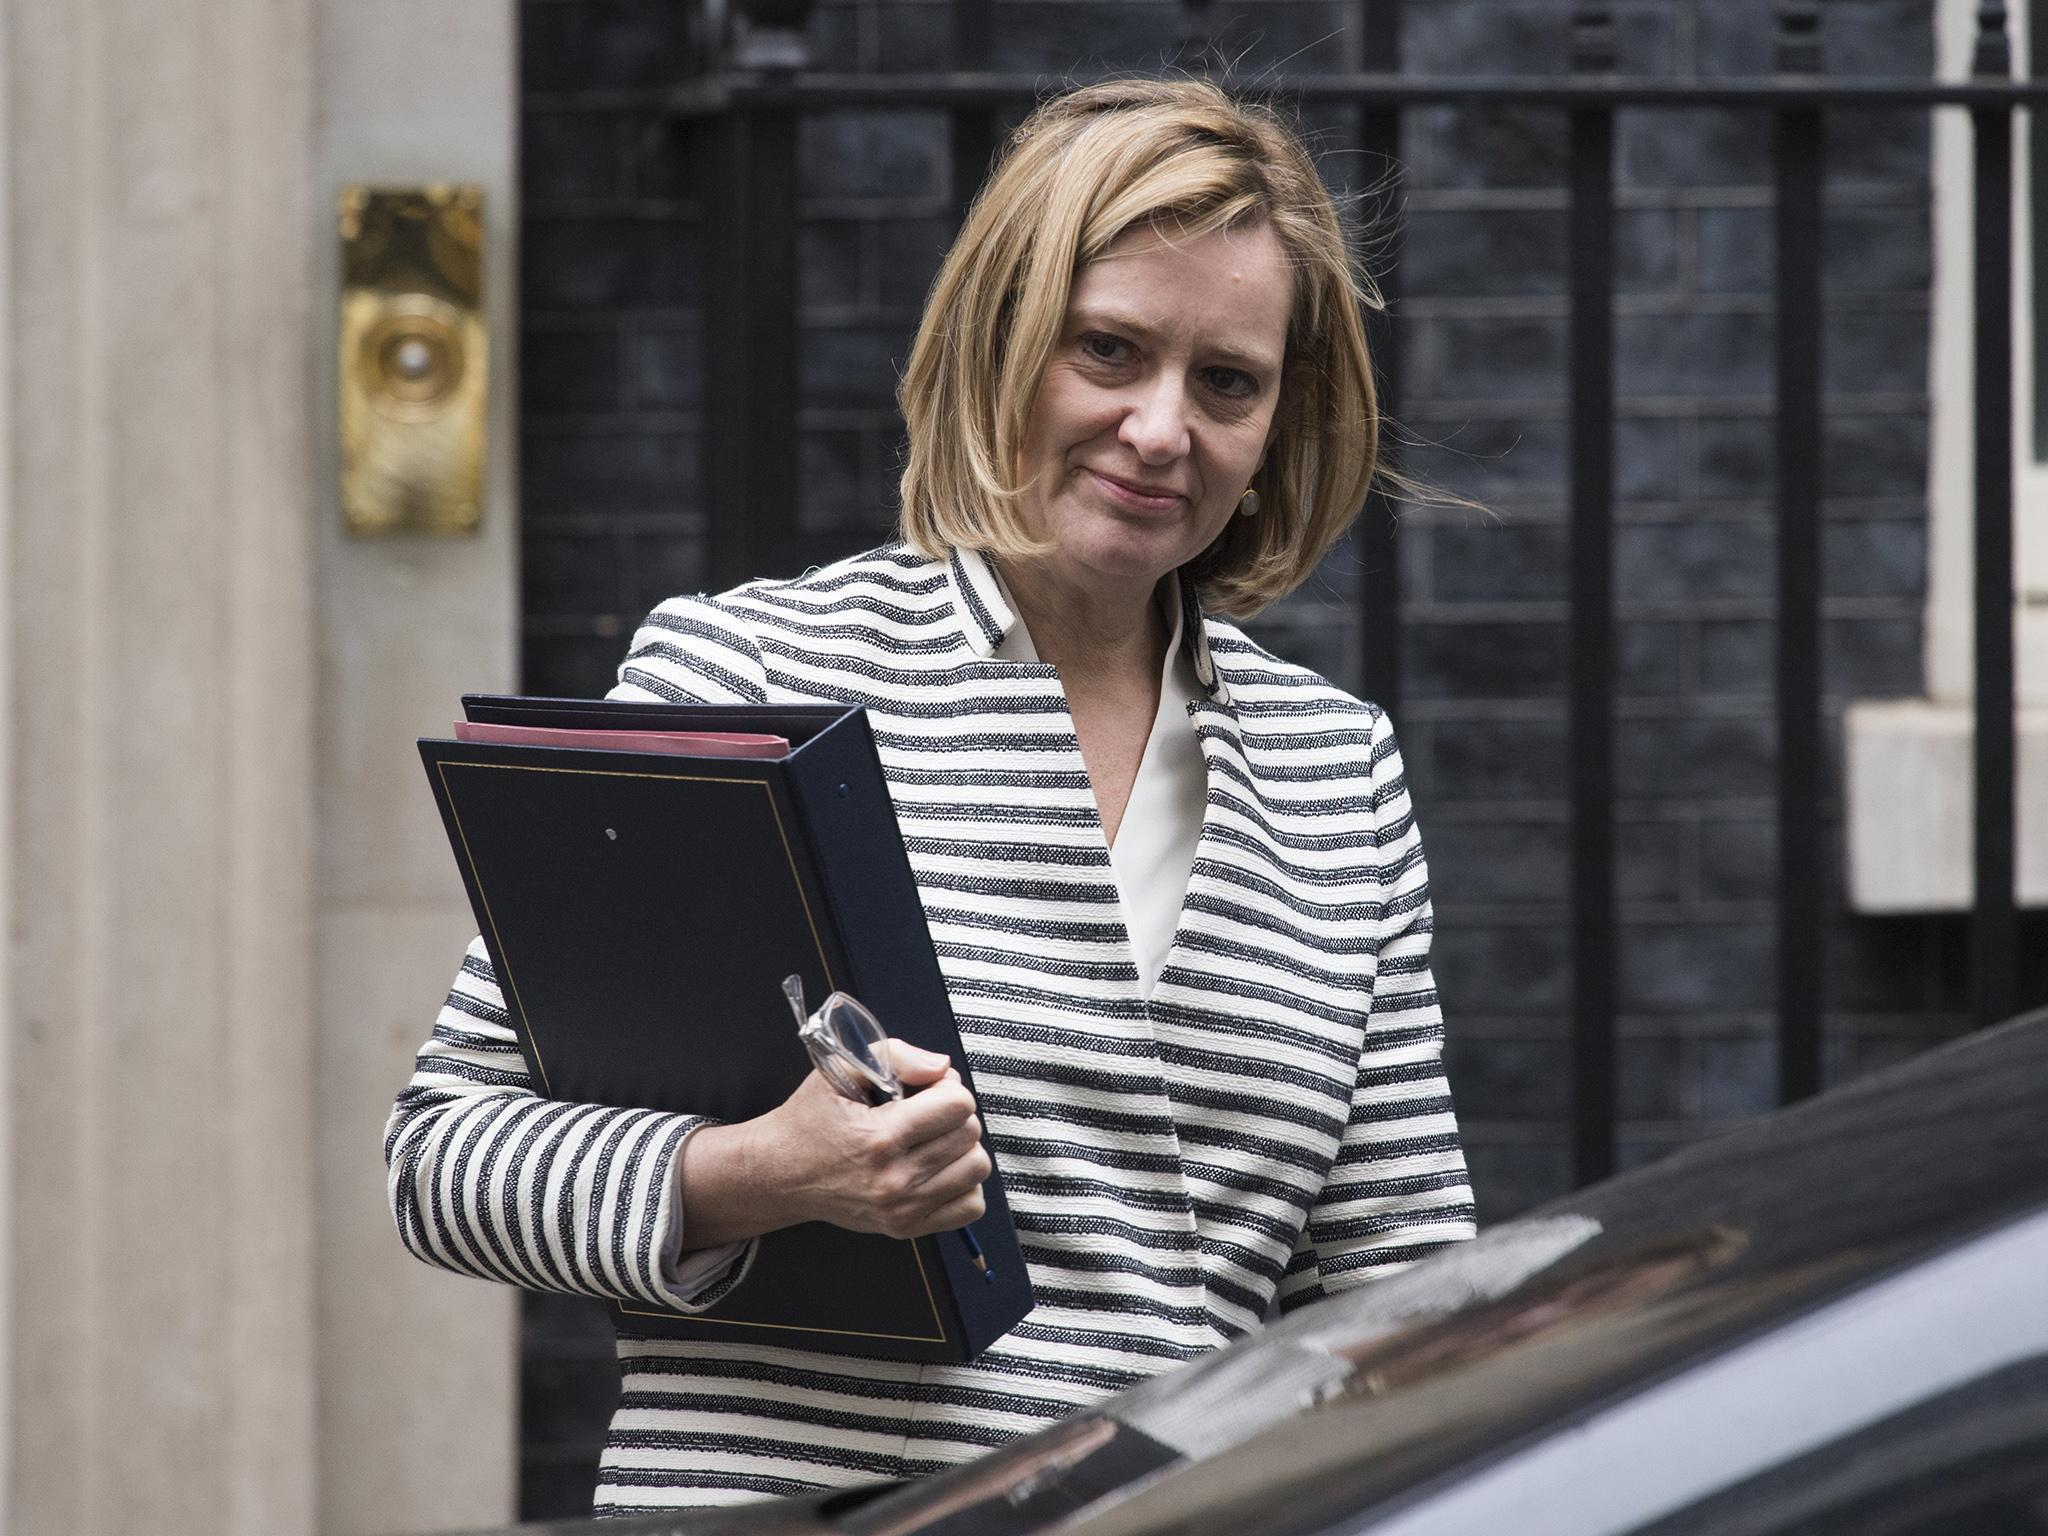 Manchester Attack: Home Secretary Amber Rudd condemns US for leaks of shared British intelligence